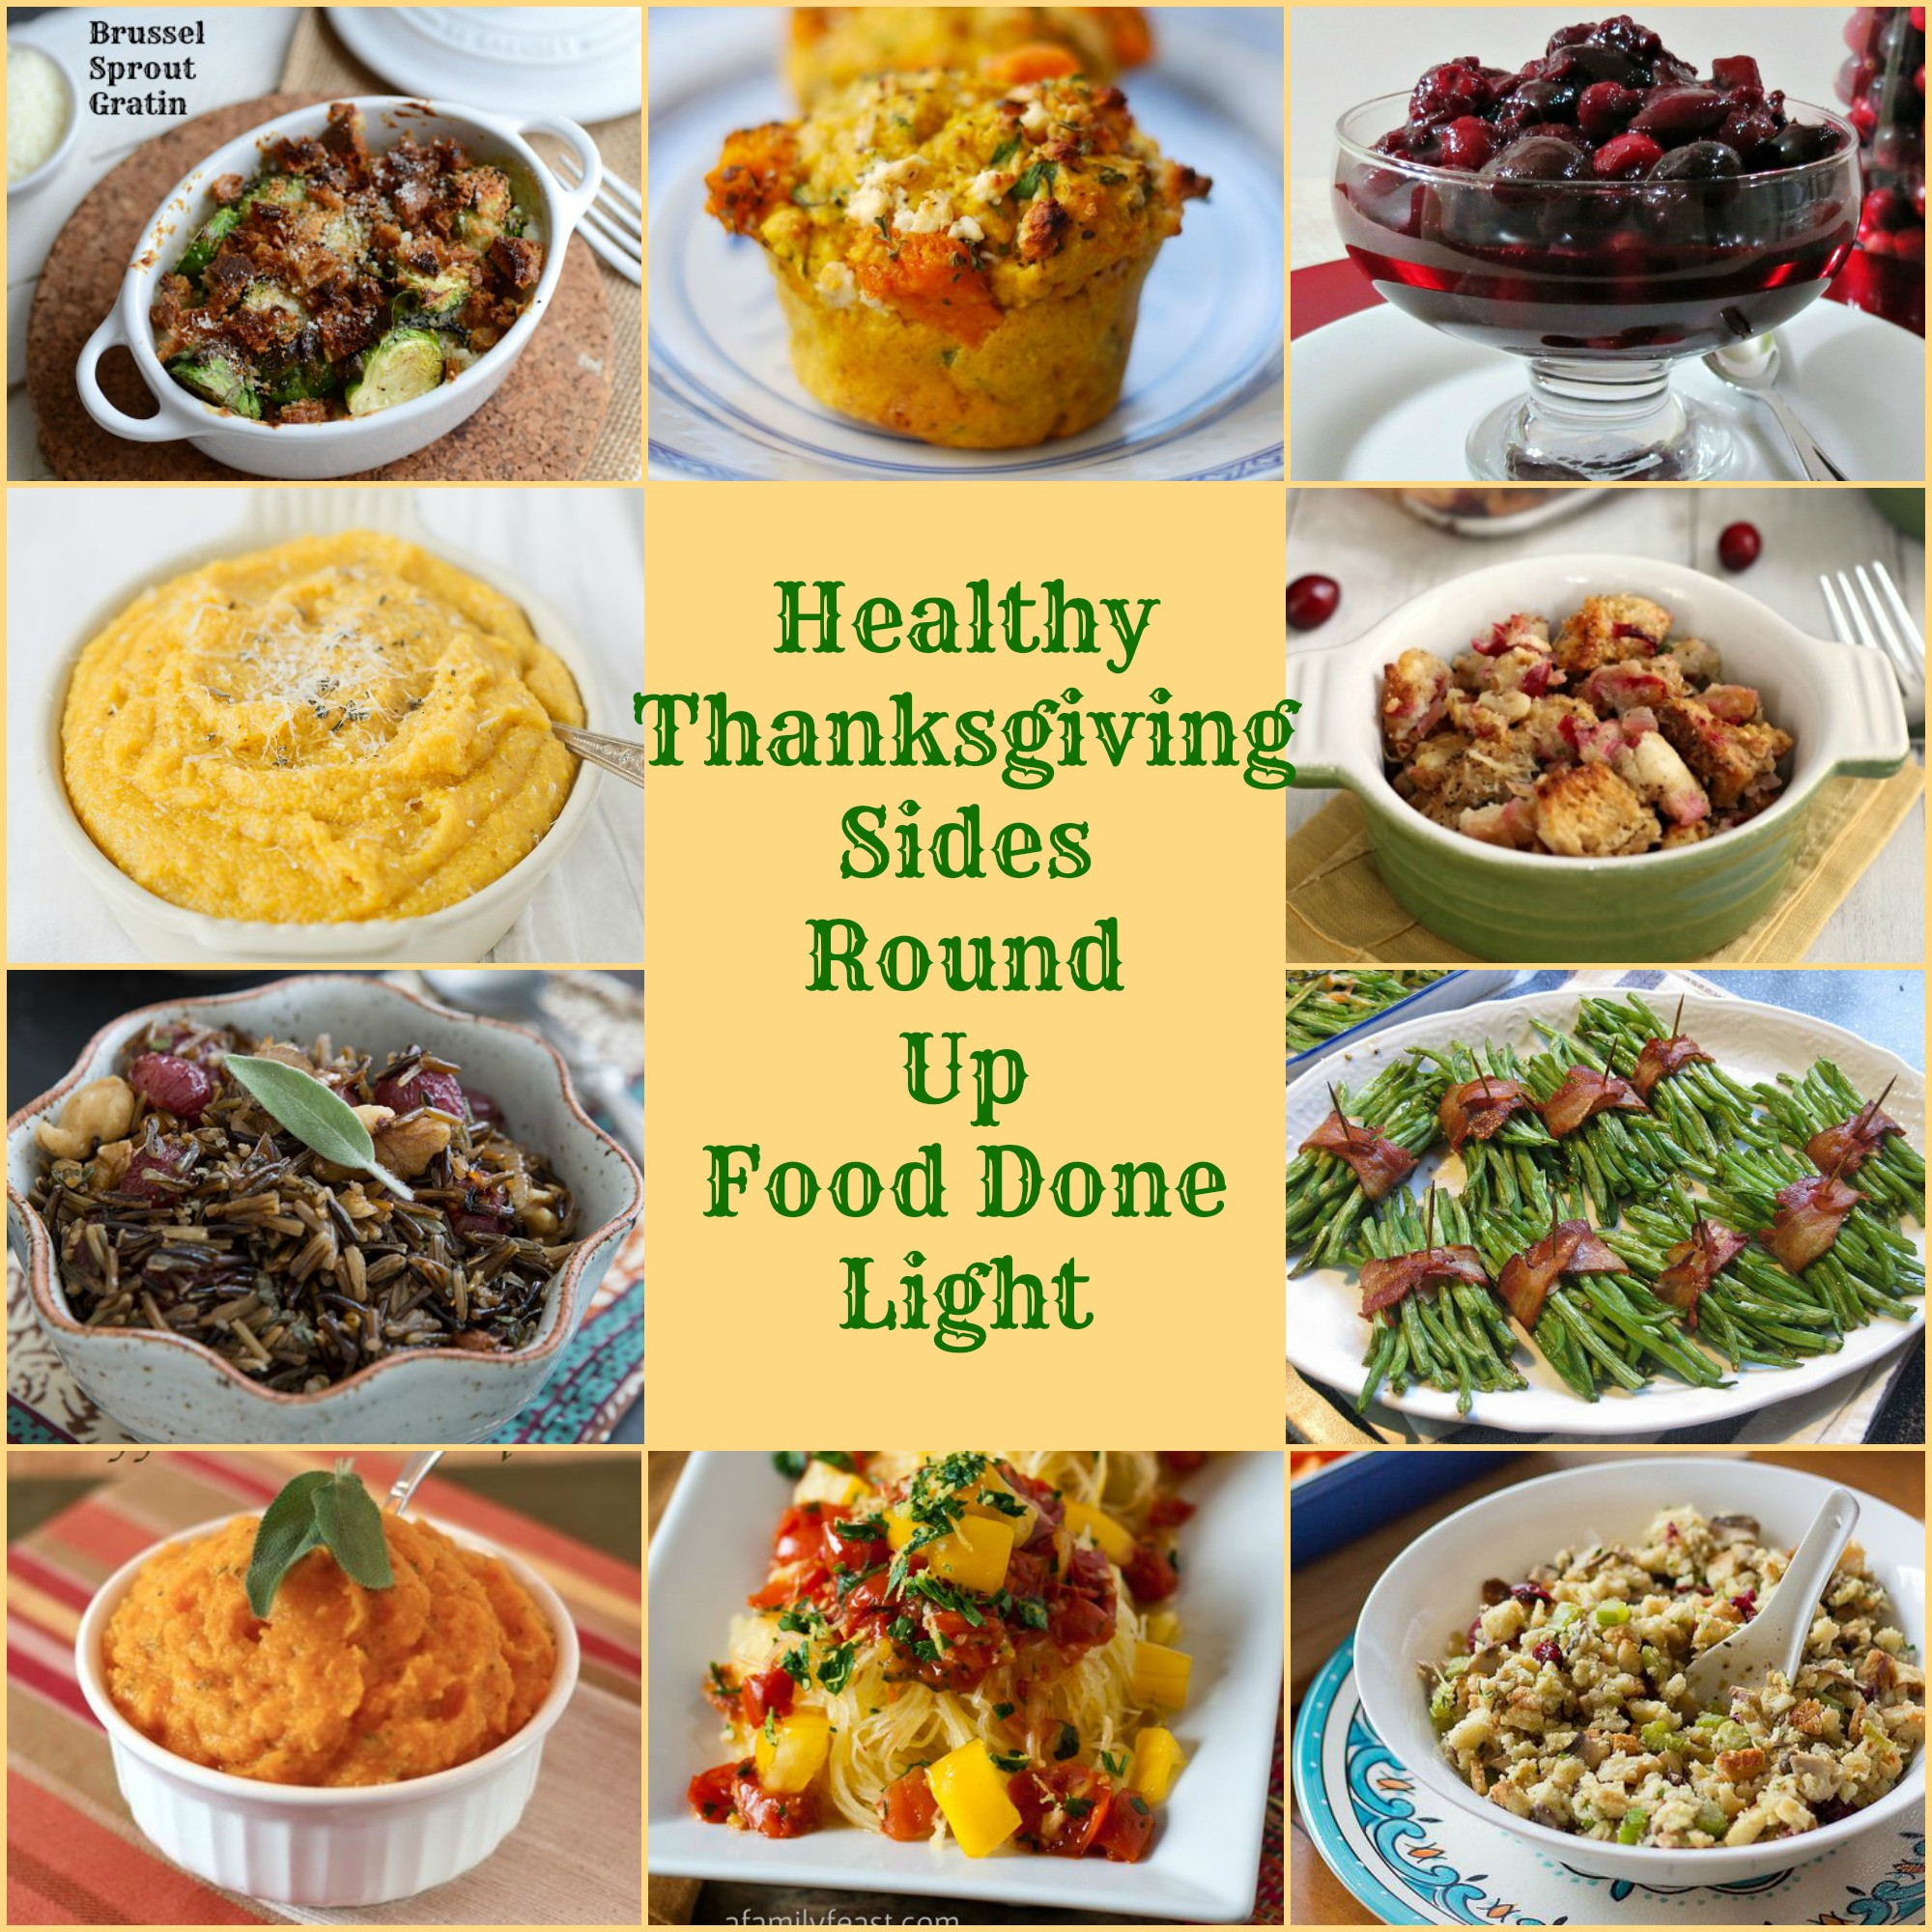 Healthy Thanksgiving Dishes  Healthy Thanksgiving Sides Recipe Round Up Food Done Light